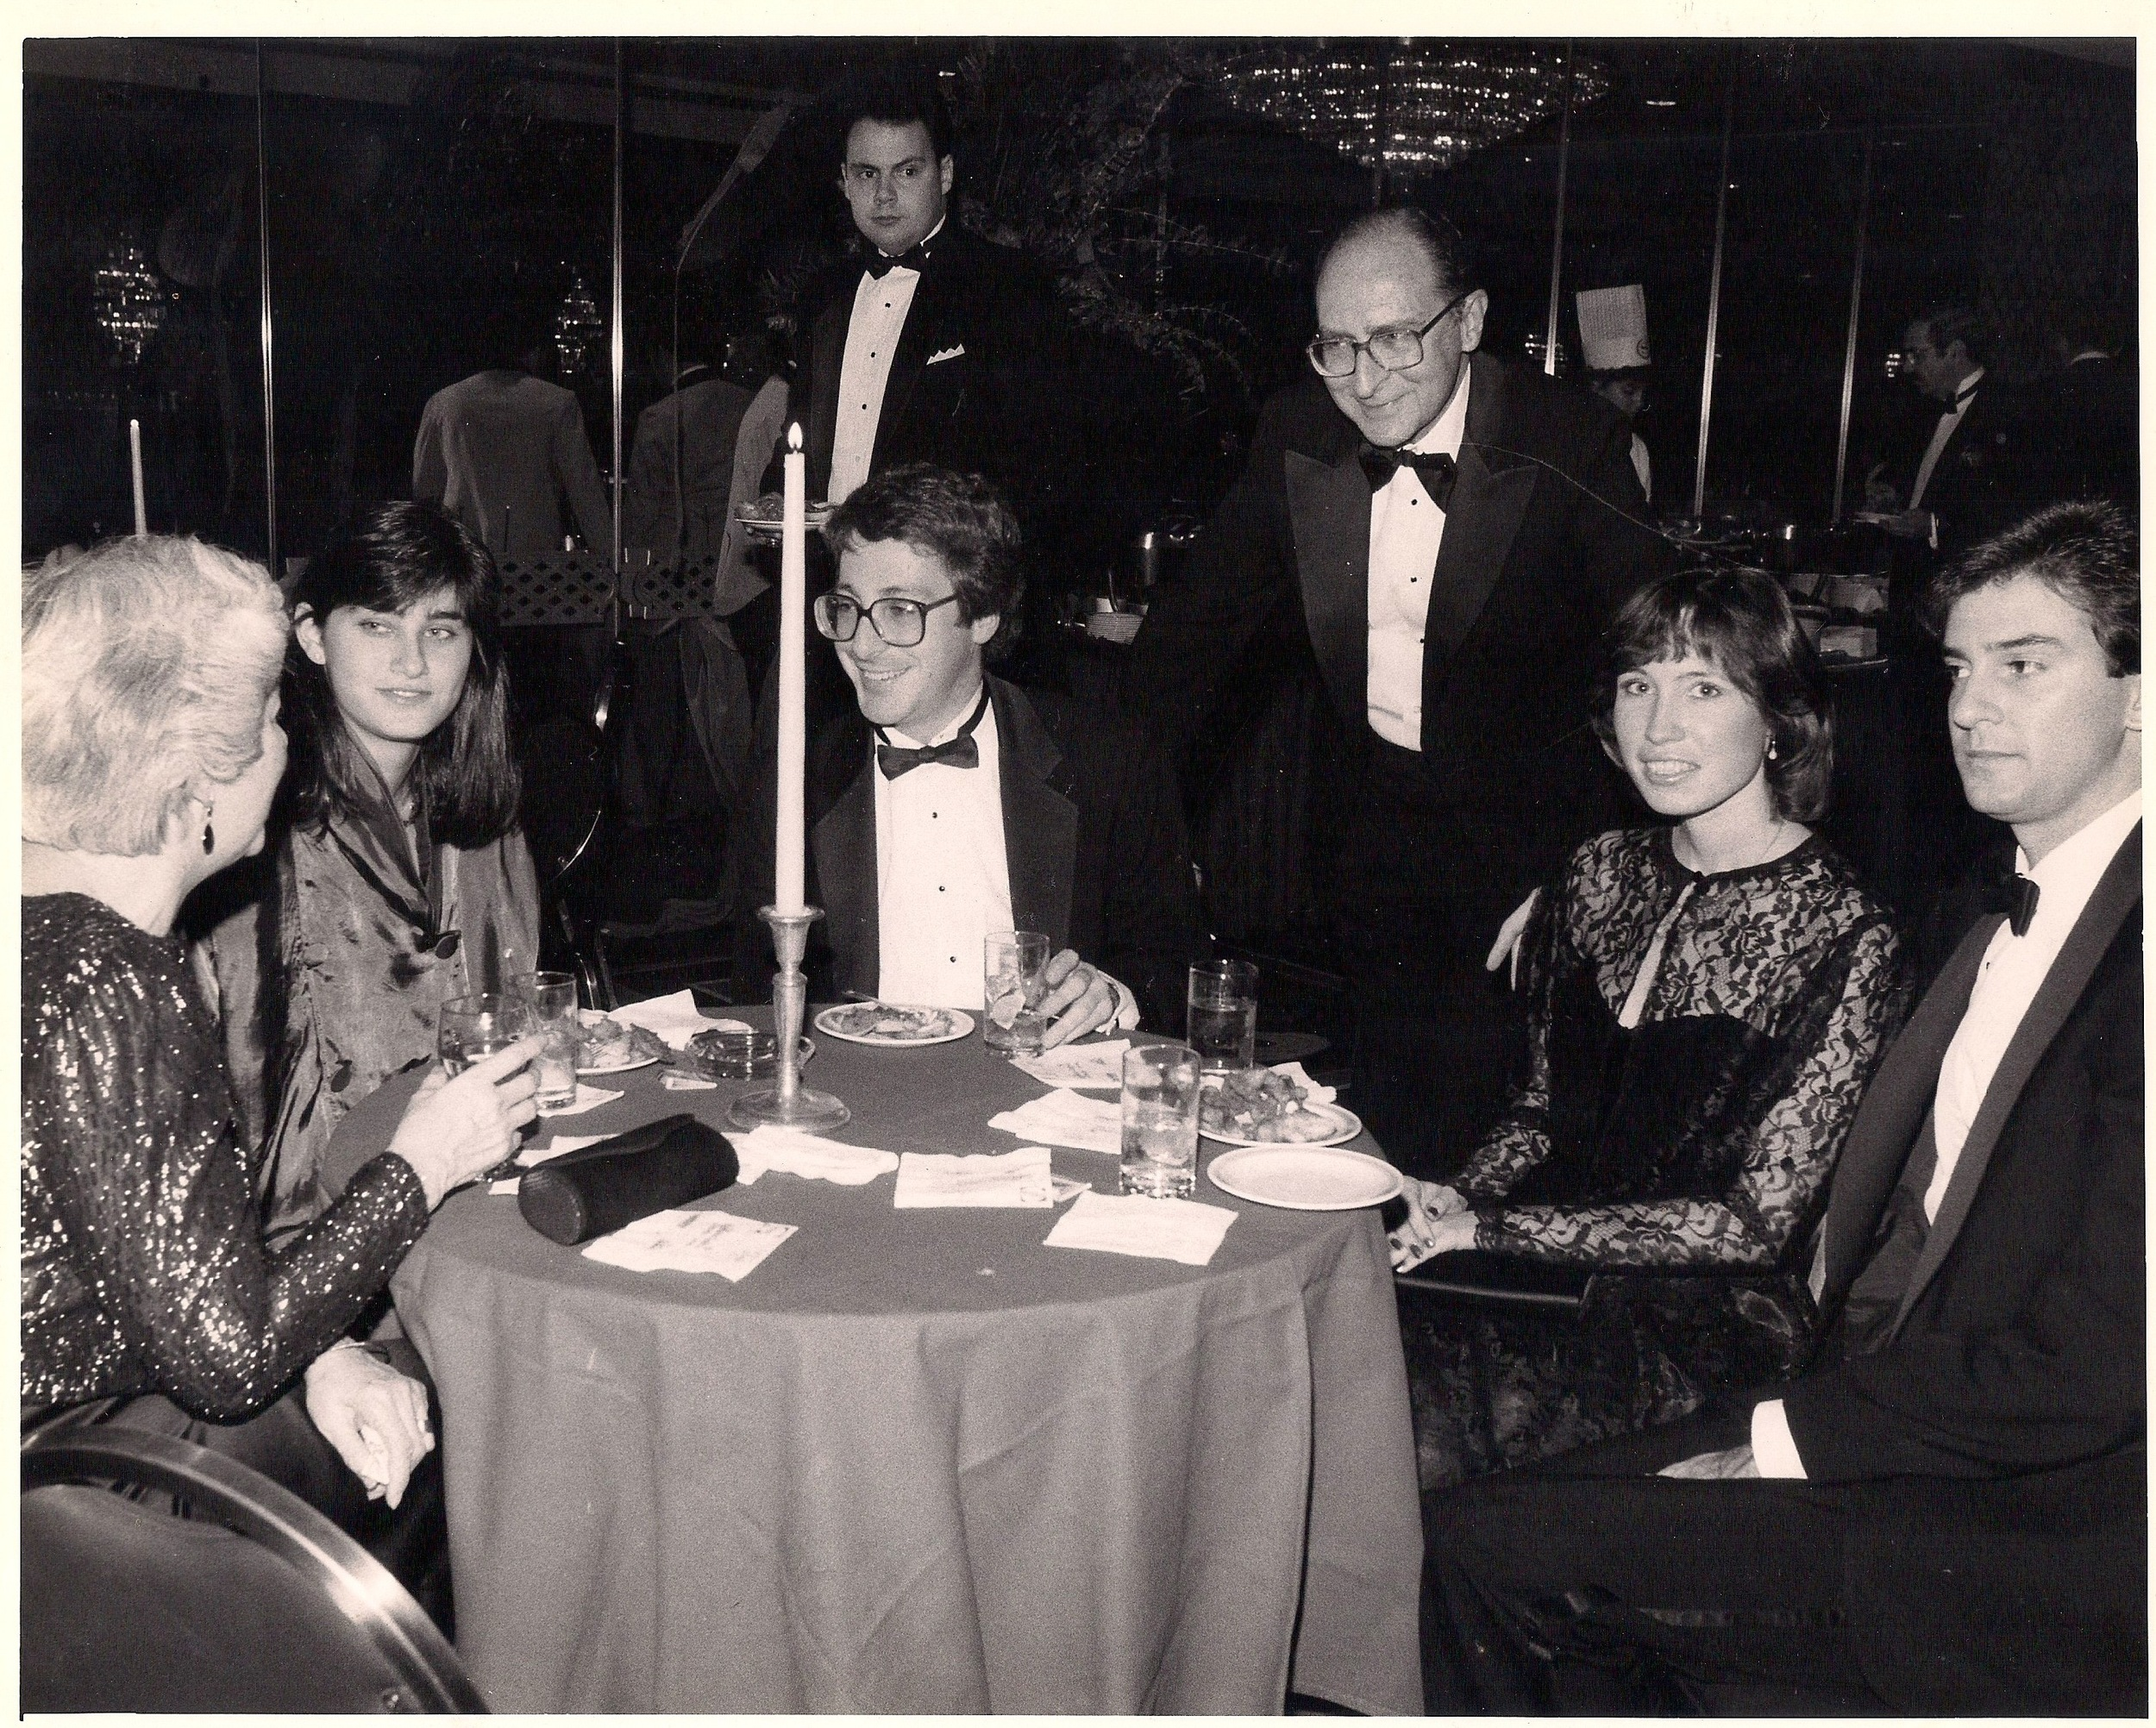 Richard, during his Executive Director days of the International Council of NATAS, with the head writer of the broadcast, chatting with his mom.